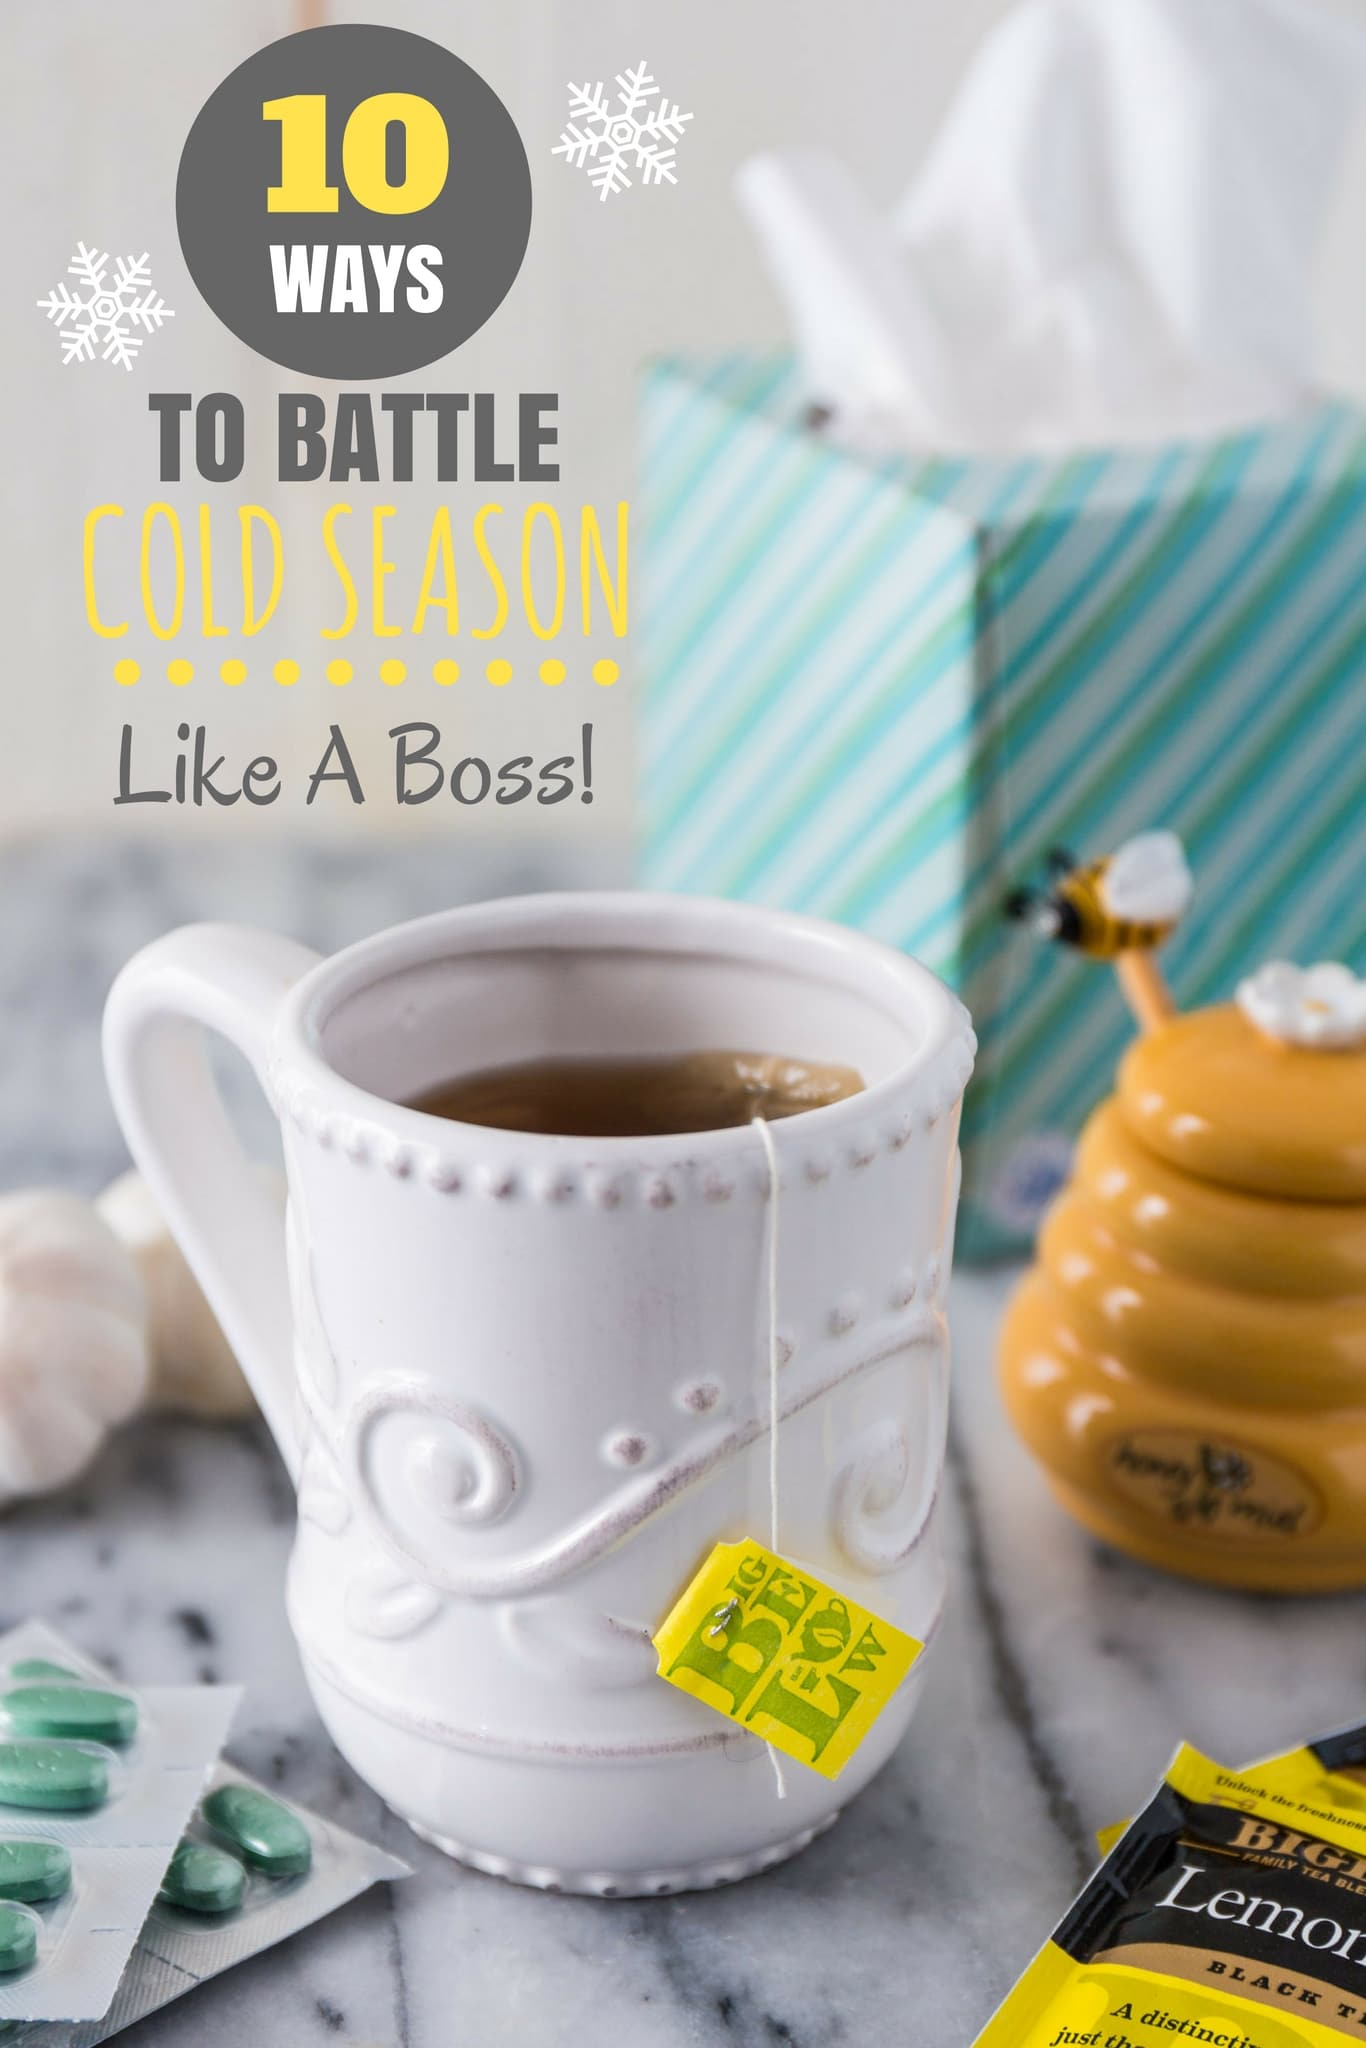 10 Ways To Battle Cold Season Like A Boss! | www.oliviascuisine.com | Cold season is here and it's only a matter of time until you have to deal with that annoying cold bug. But do not fret just yet! Just follow my tips and you will fight off this thing like a champ.